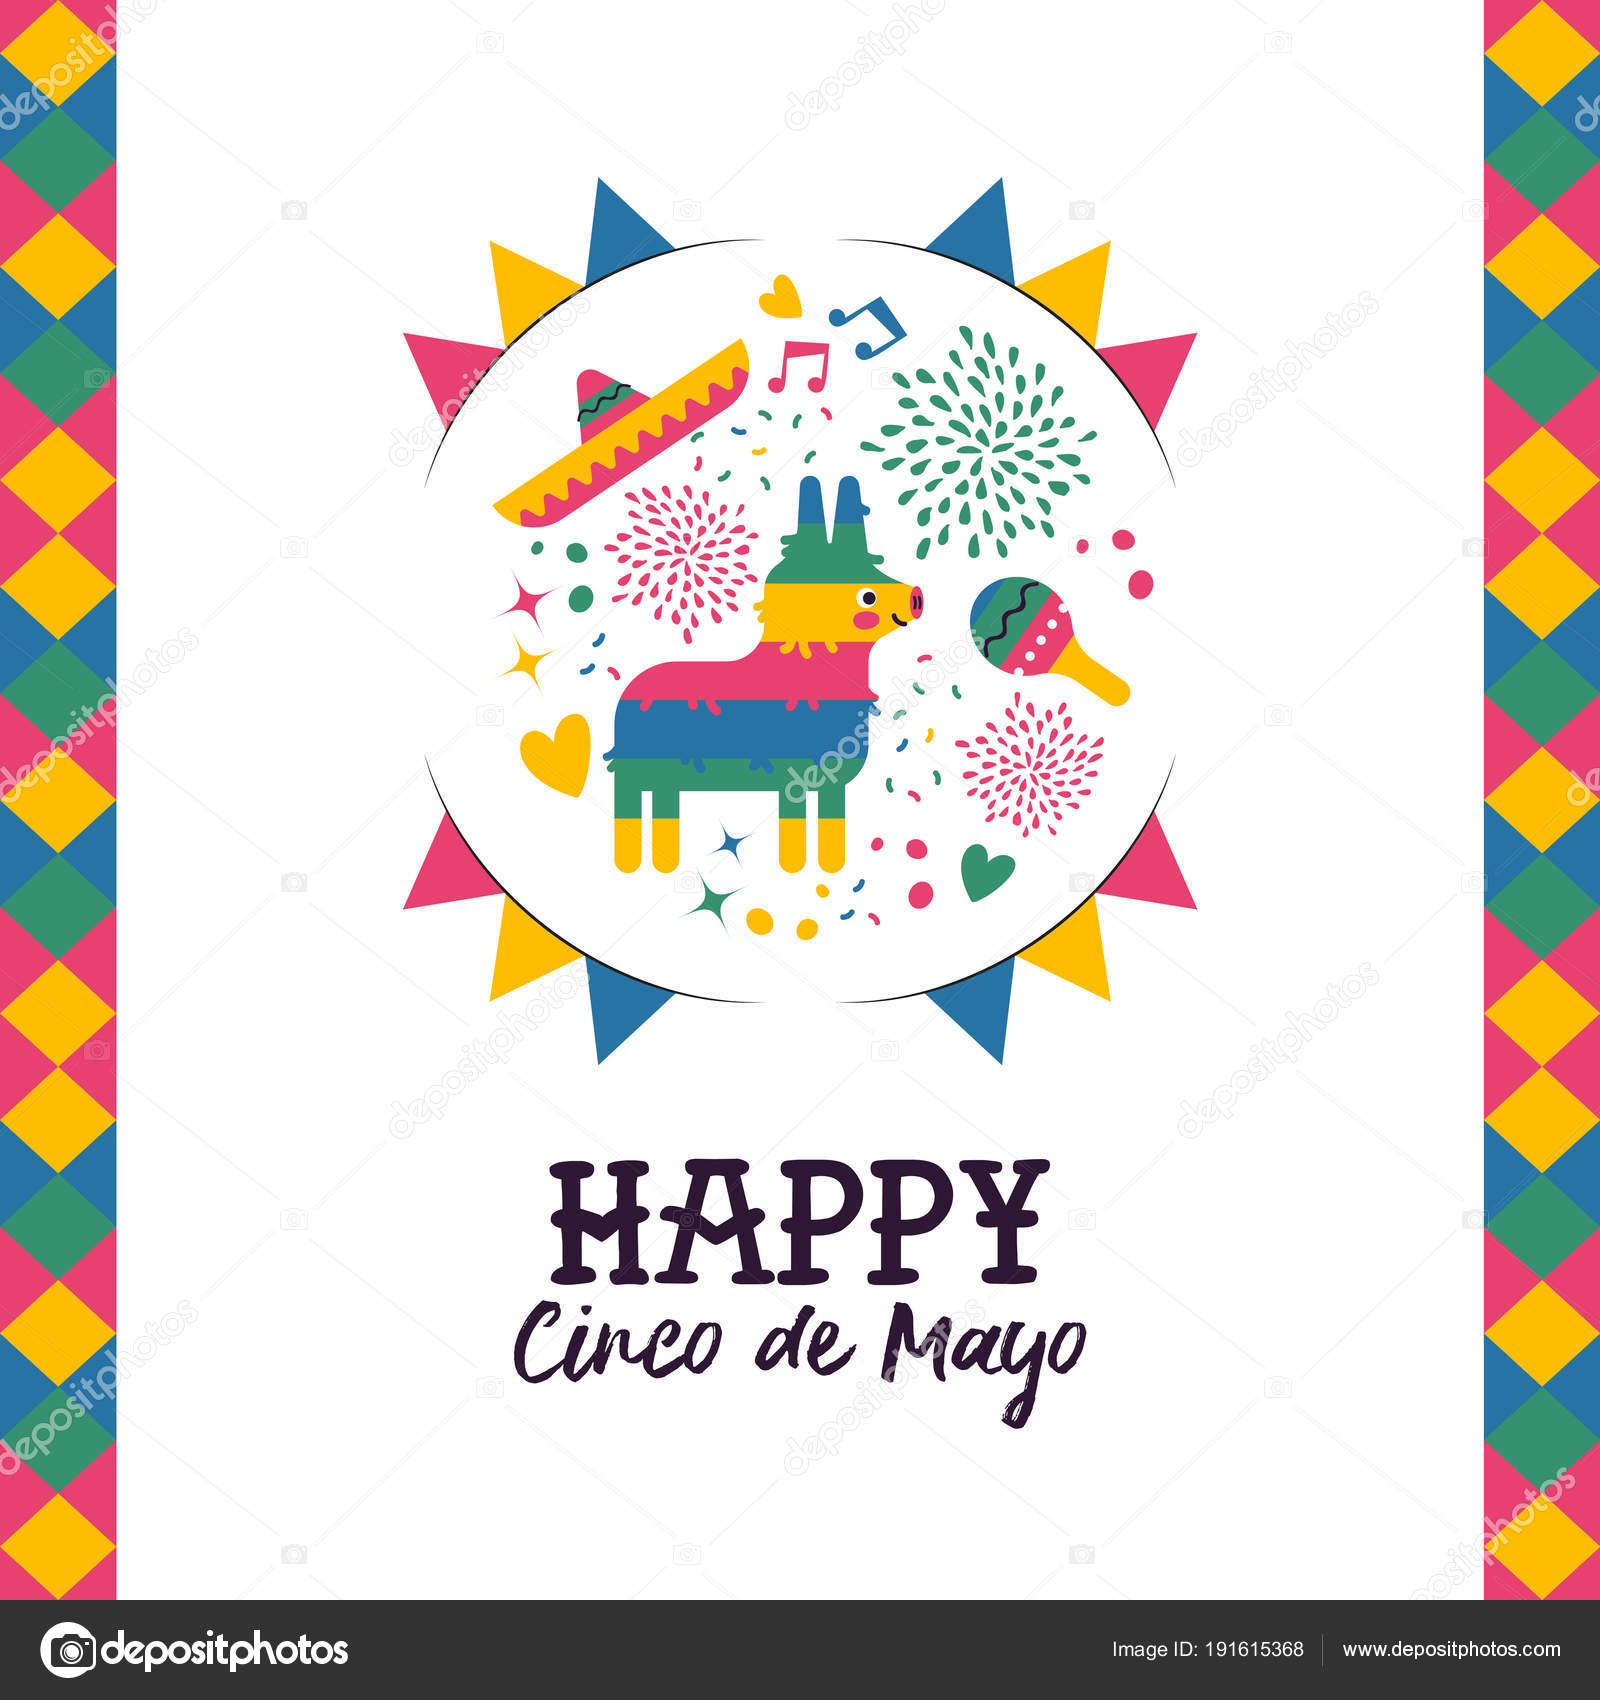 Cinco de mayo hand drawn pinata greeting card stock vector happy cinco de mayo greeting card illustration festive mexican hand drawn decoration includes cute donkey pinata mariachi hat and maracas eps10 vector m4hsunfo